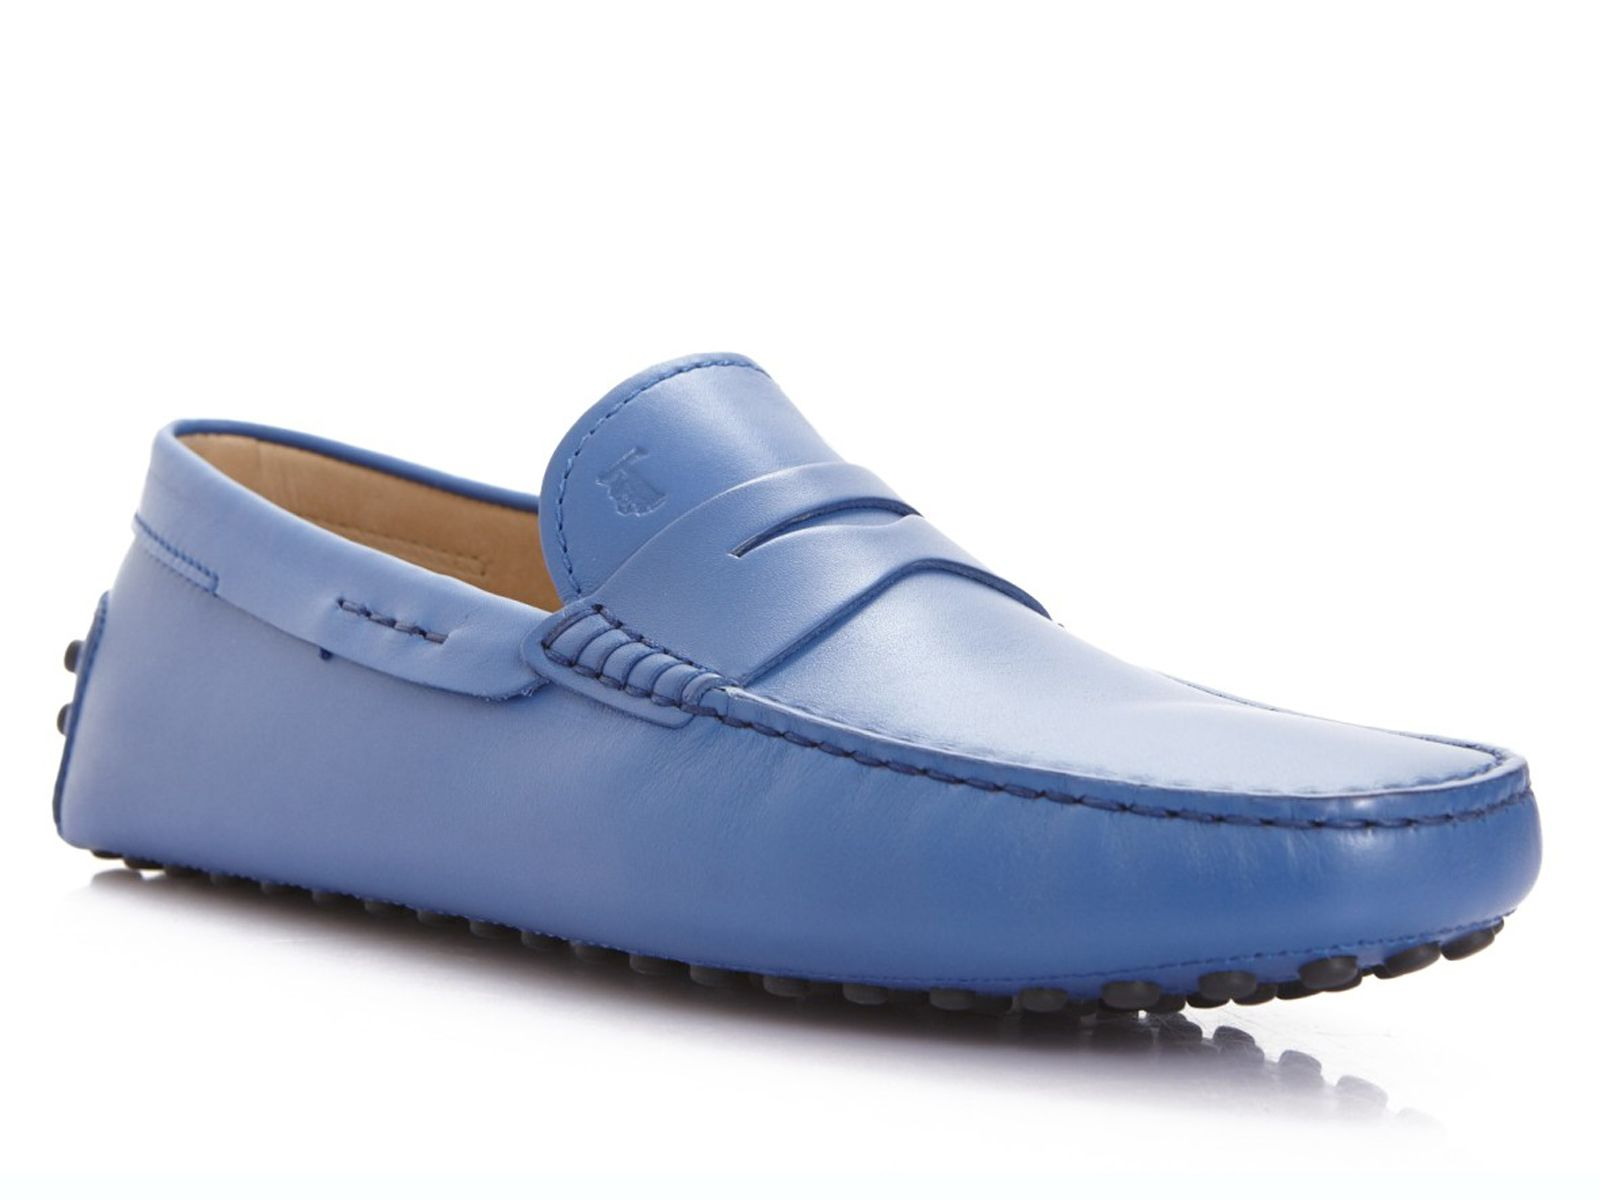 1a620a10cee Tod s men s driving moccasins in light blue leather - Italian Boutique  199